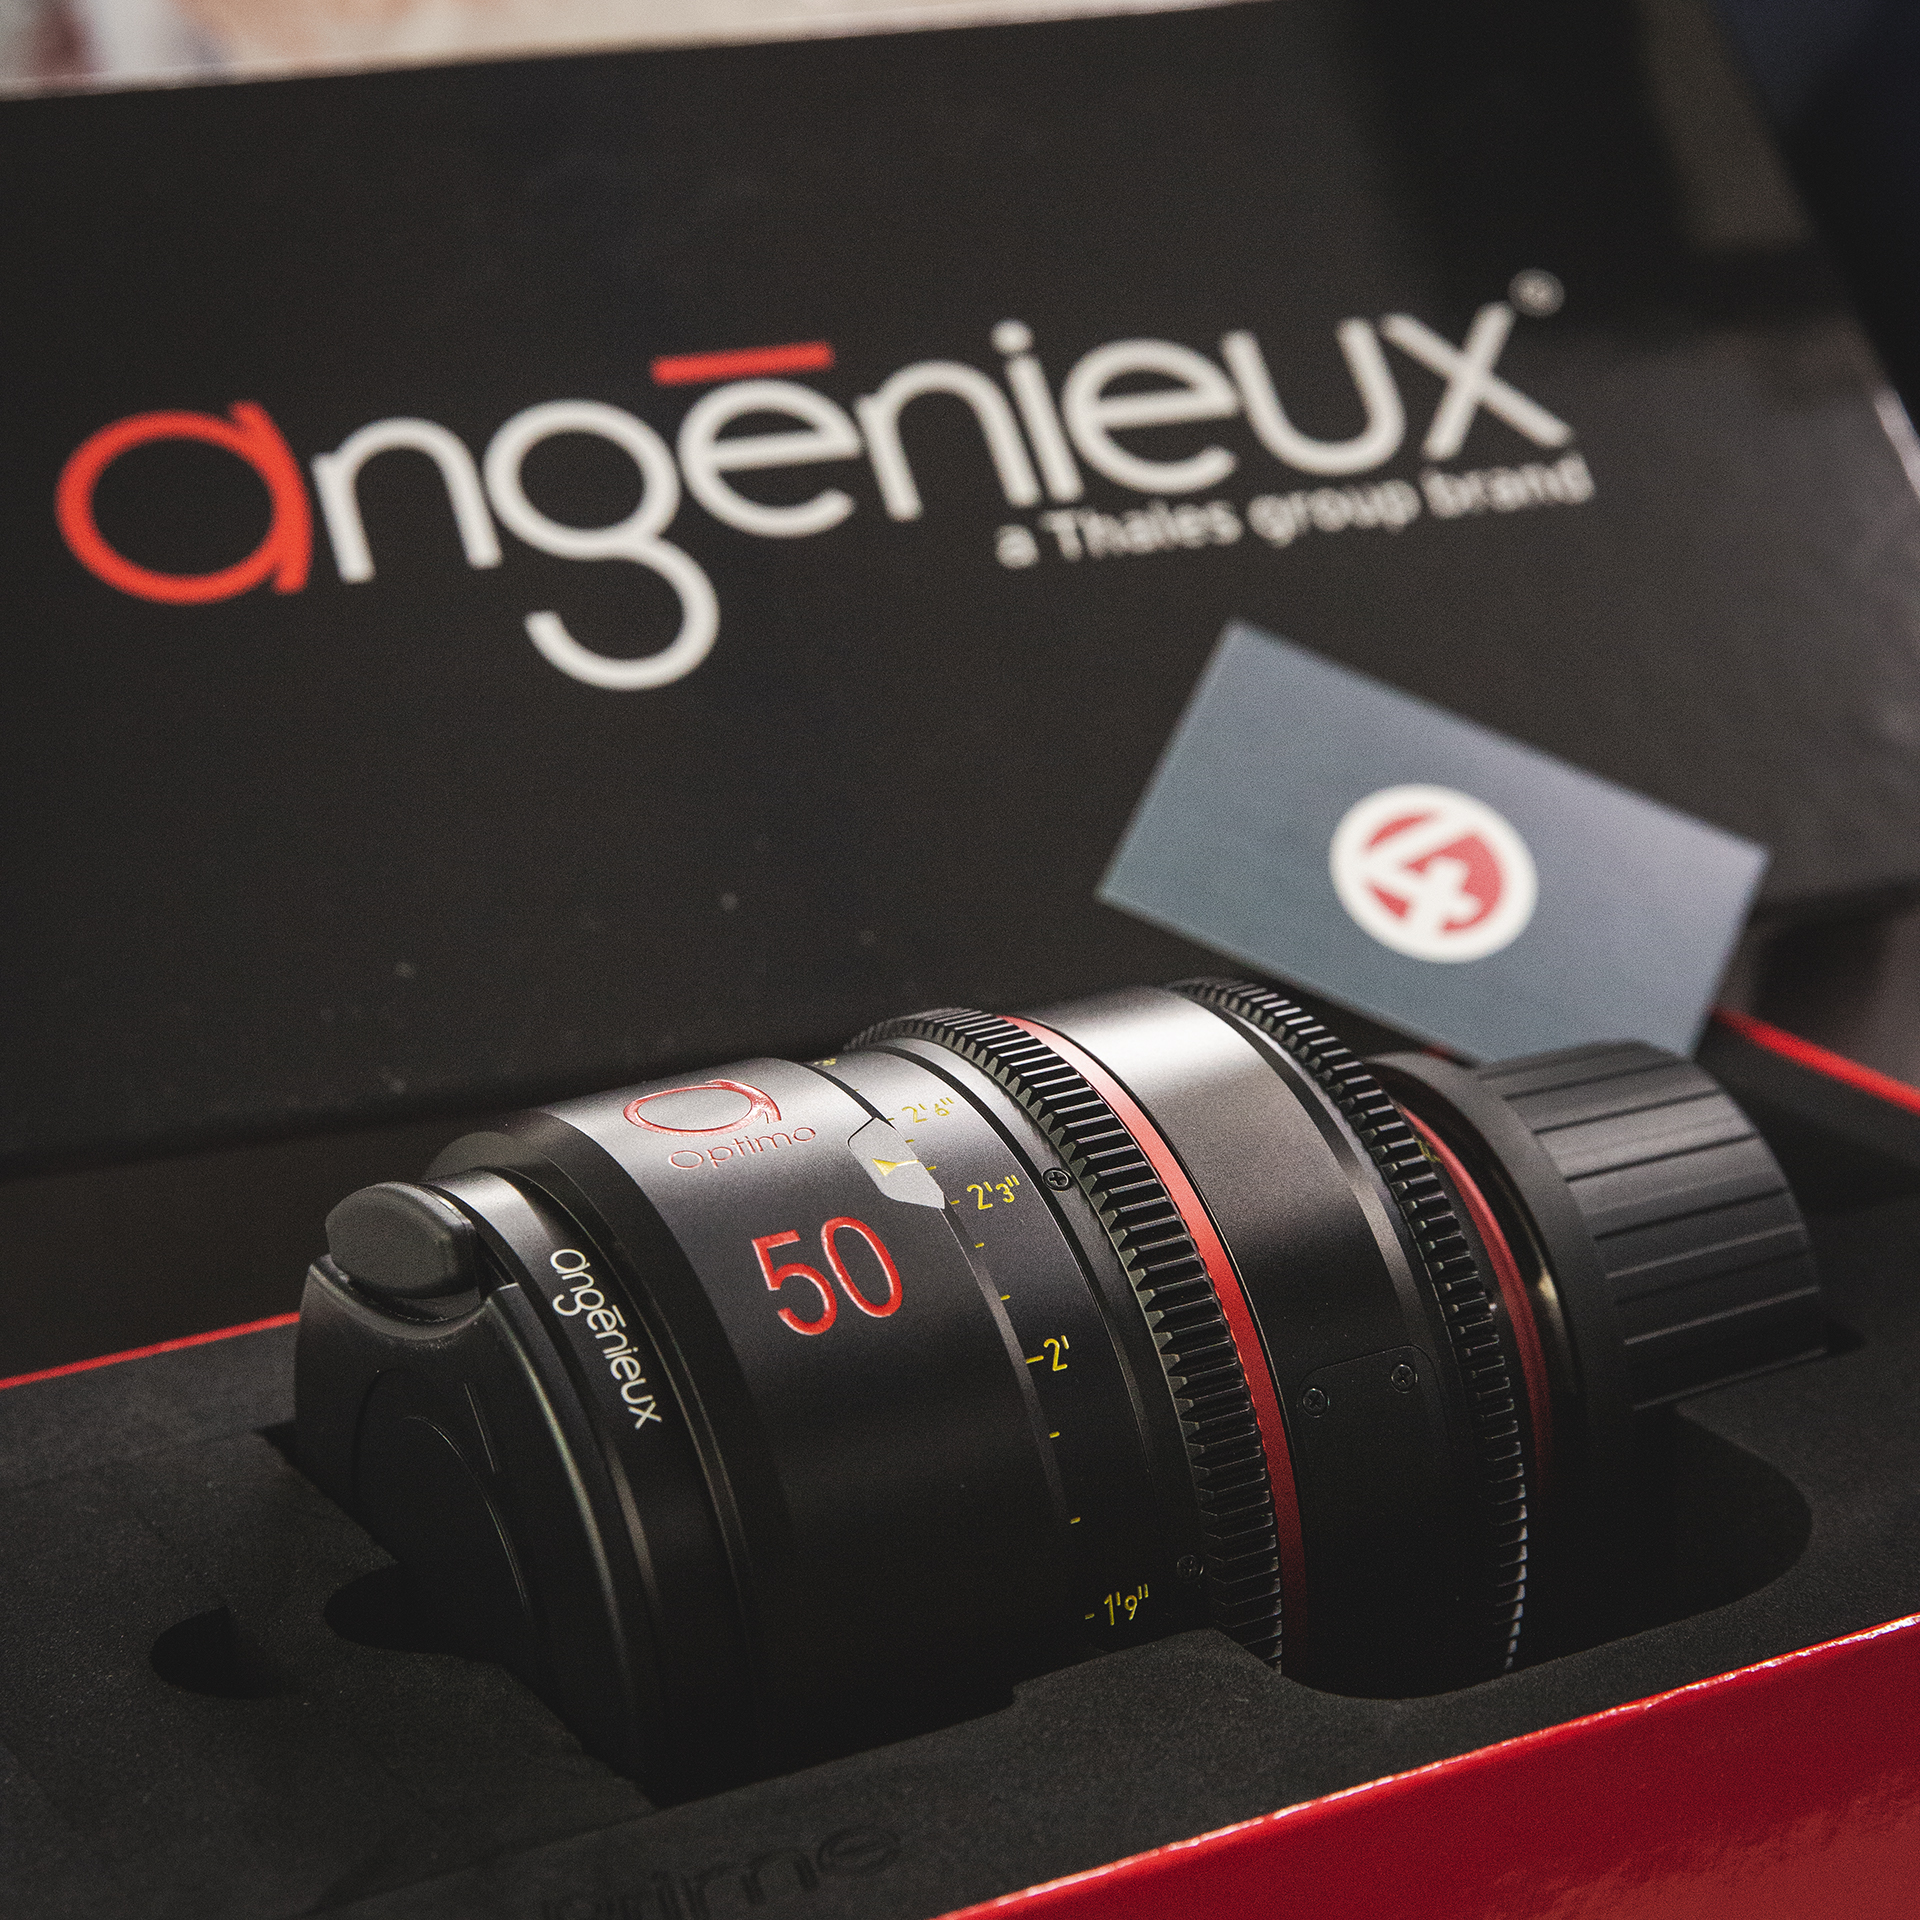 Shift 4 goes for Angénieux Full Frame Solution